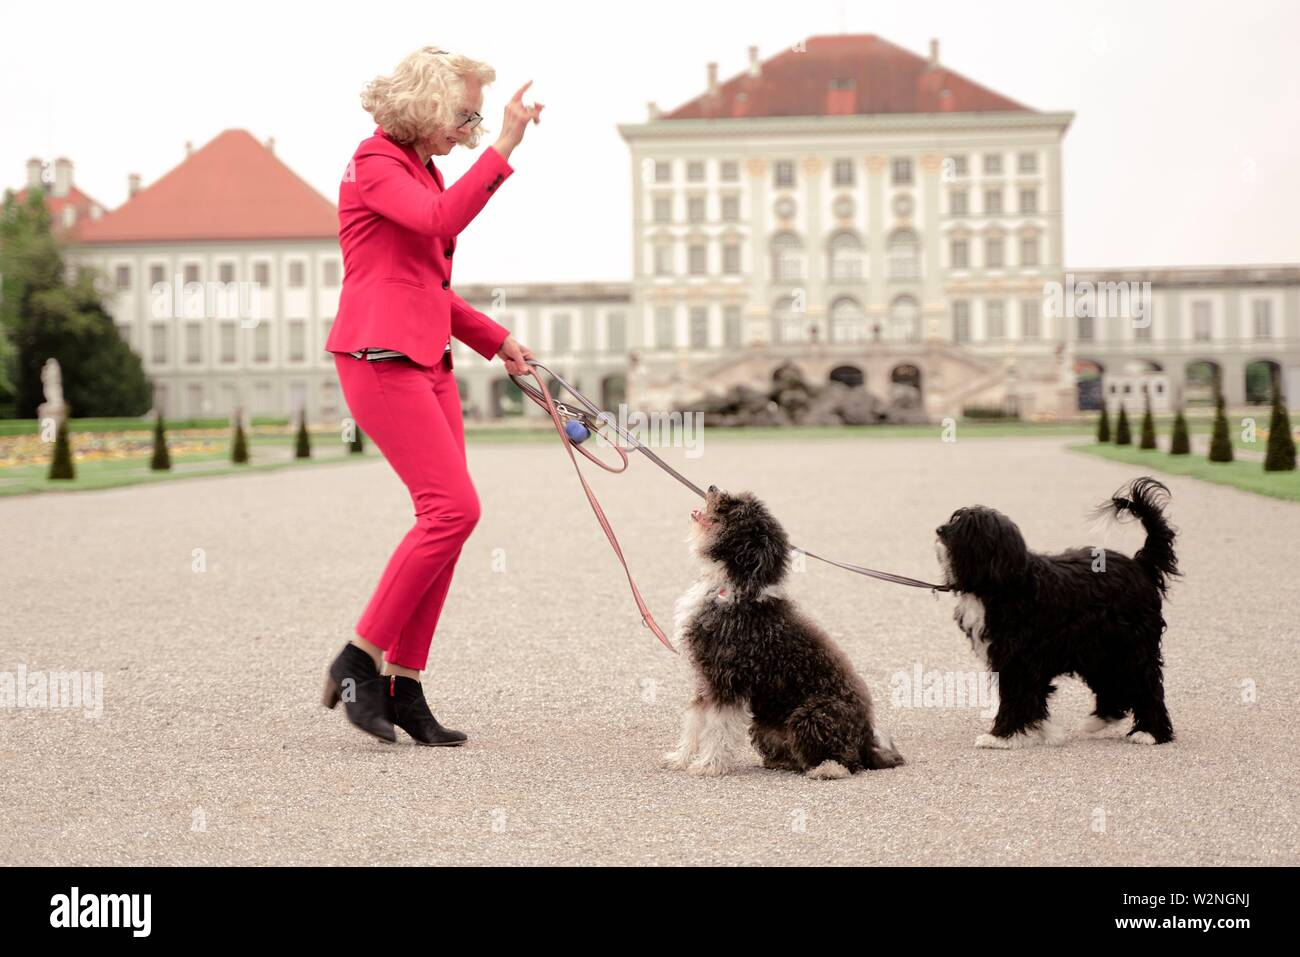 senior woman (67 years old) commanding her two dogs to sit down in park at touristic sight Nymphenburg palace, Munich, Germany. - Stock Image